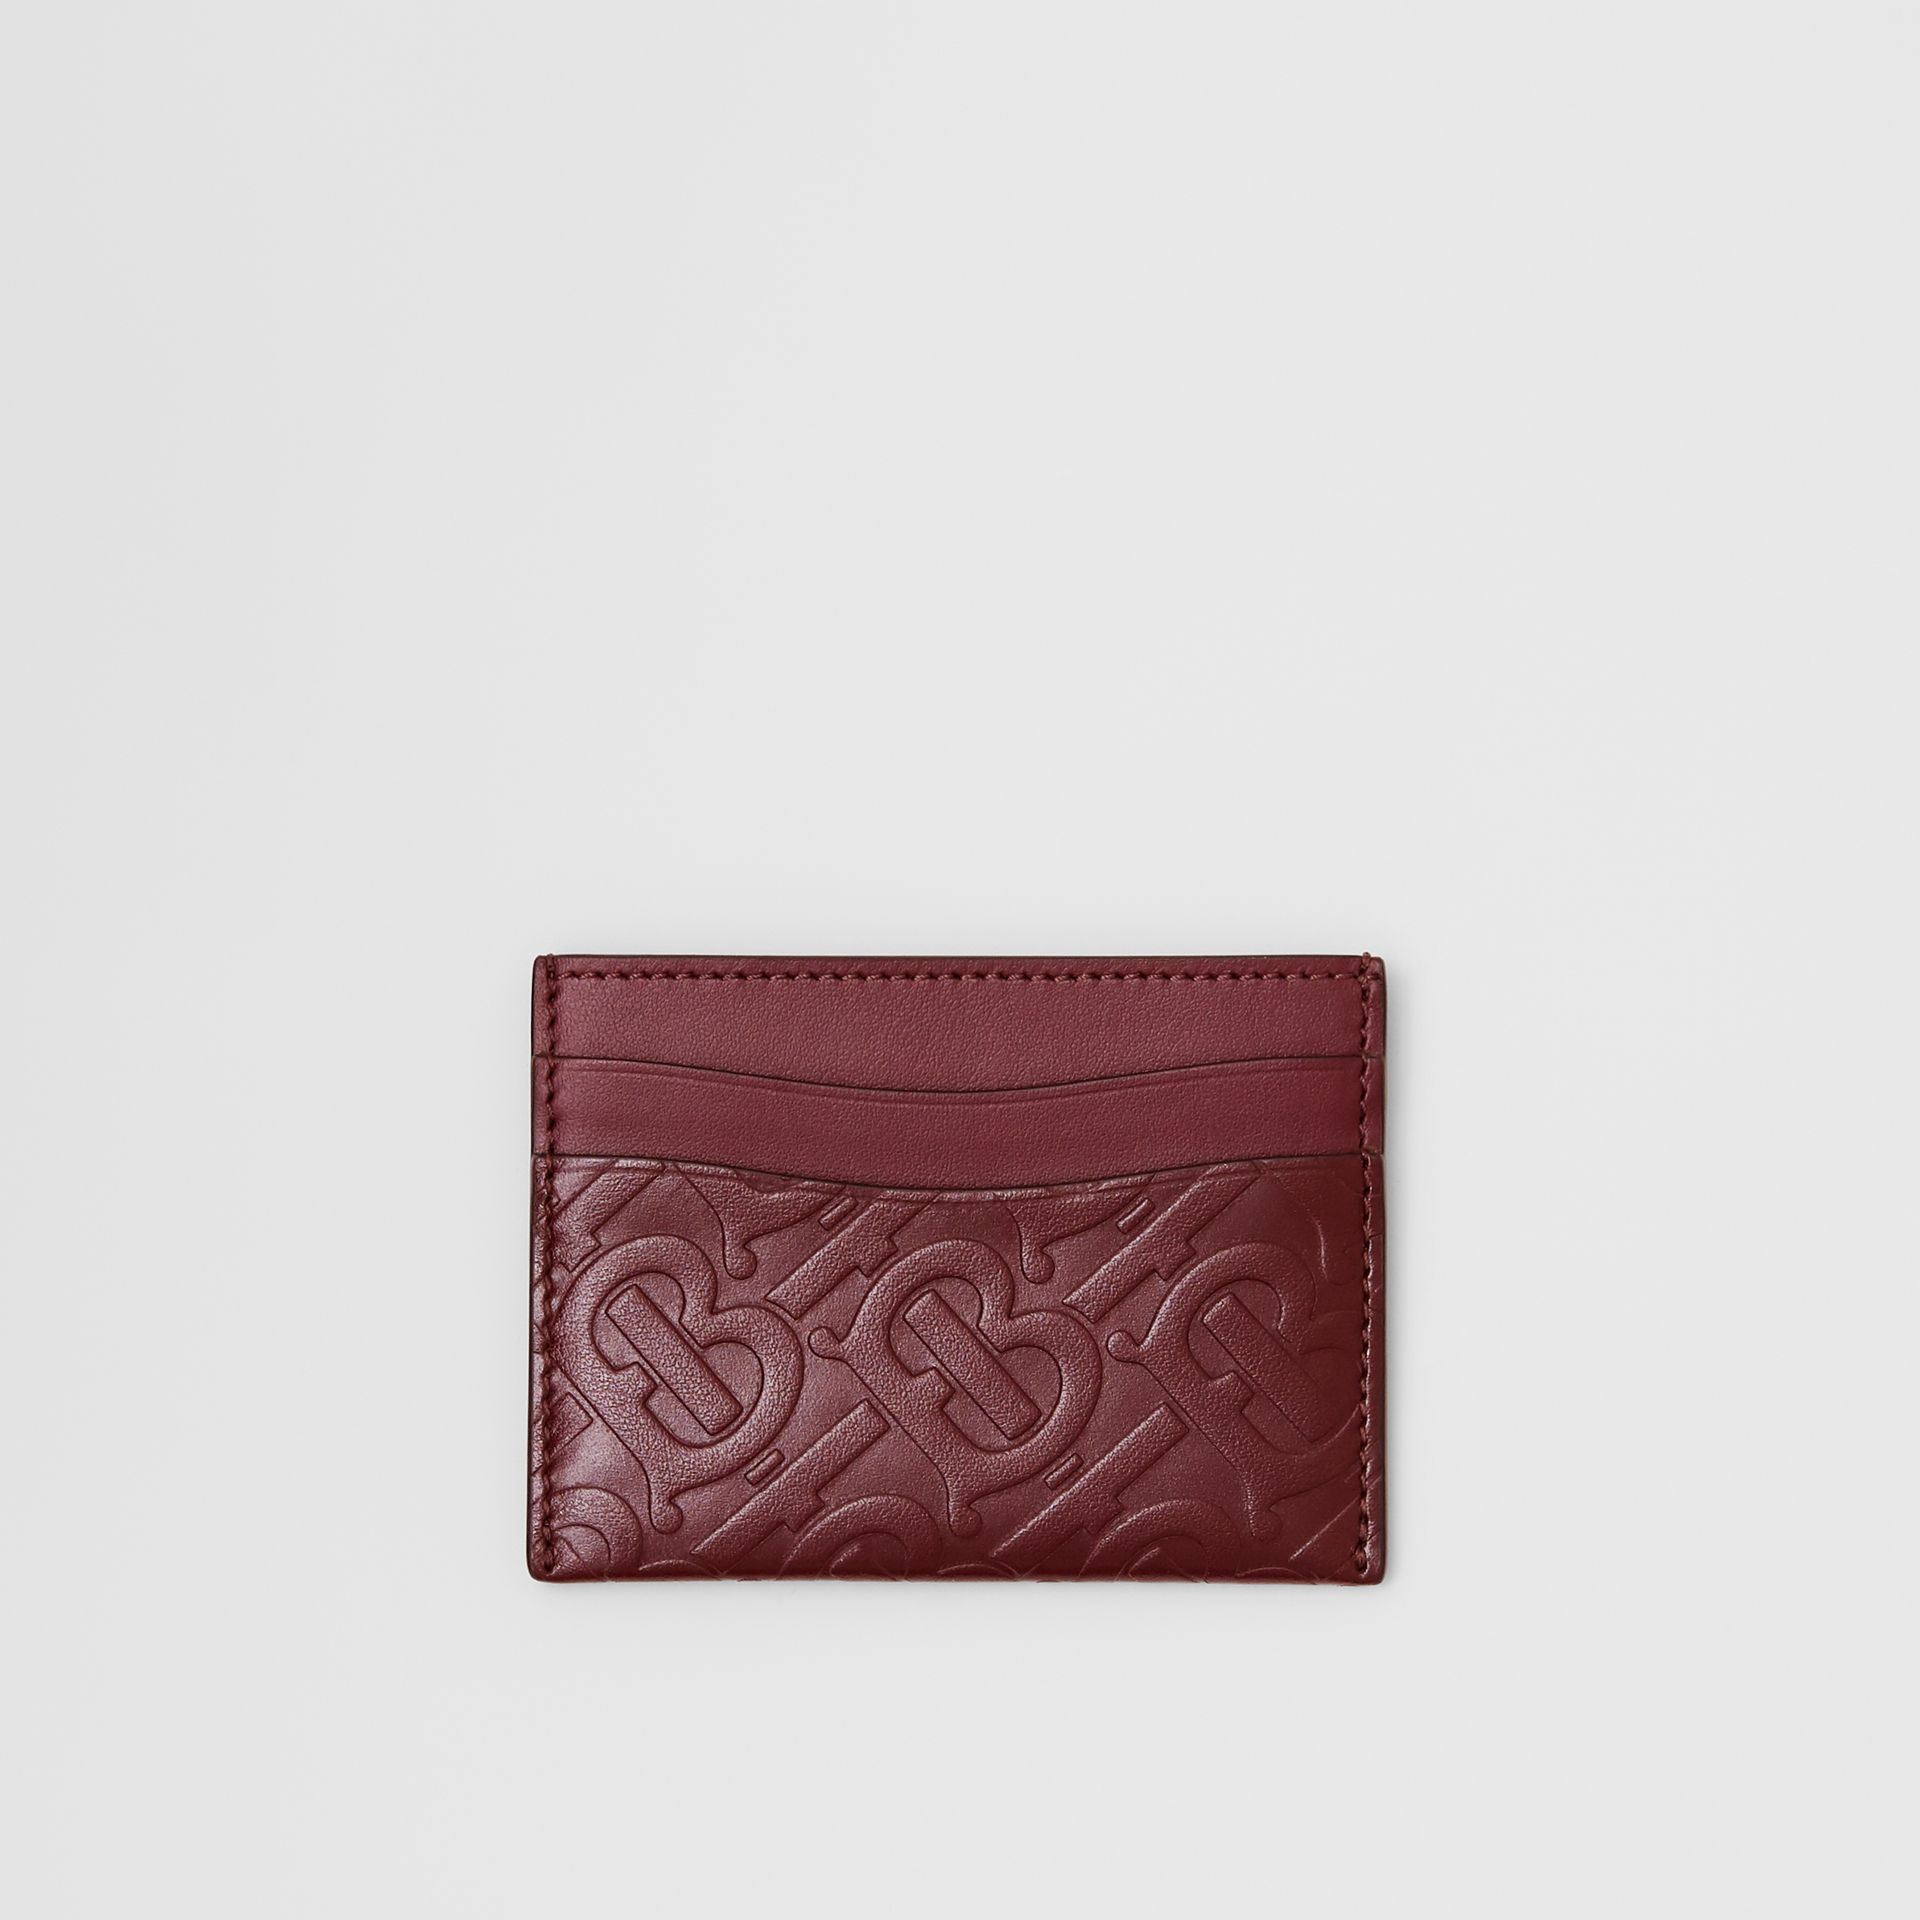 Monogram Leather Card Case in Oxblood - Women | Burberry Australia - gallery image 0